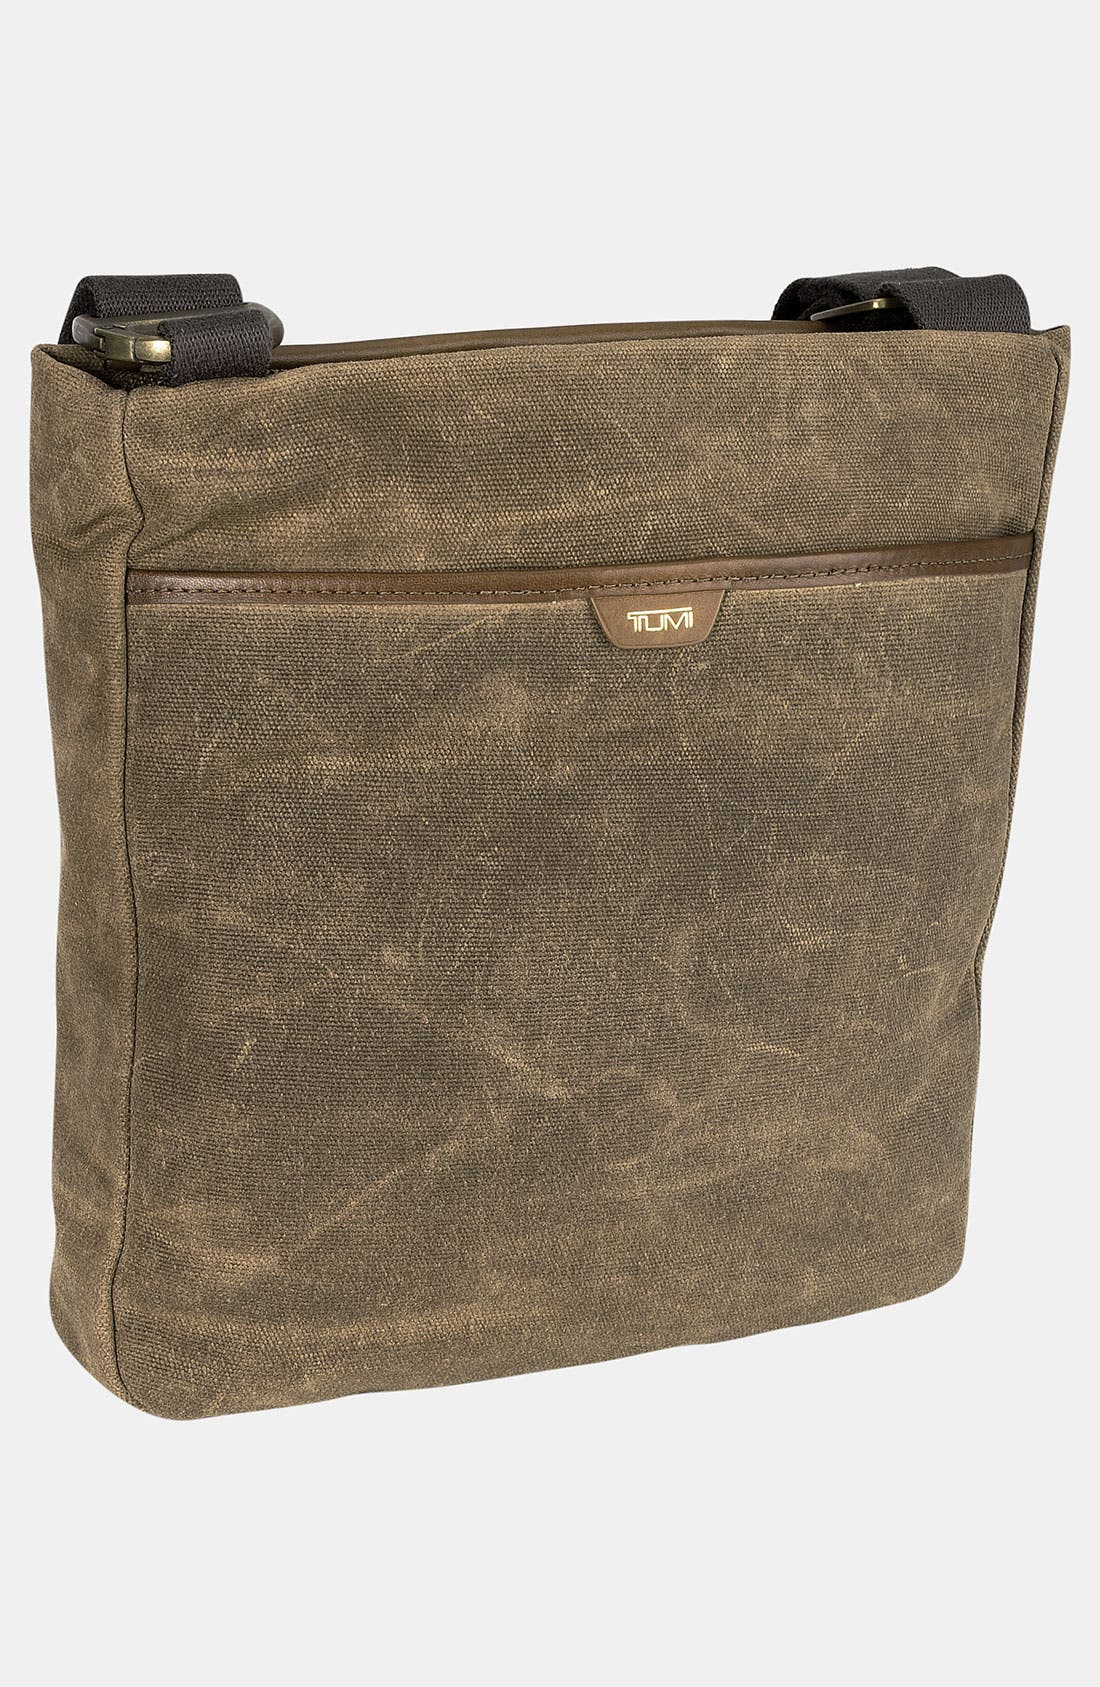 Alternate Image 3  - T-Tech by Tumi 'Forge - Pueblo' Top Zip Flap Bag